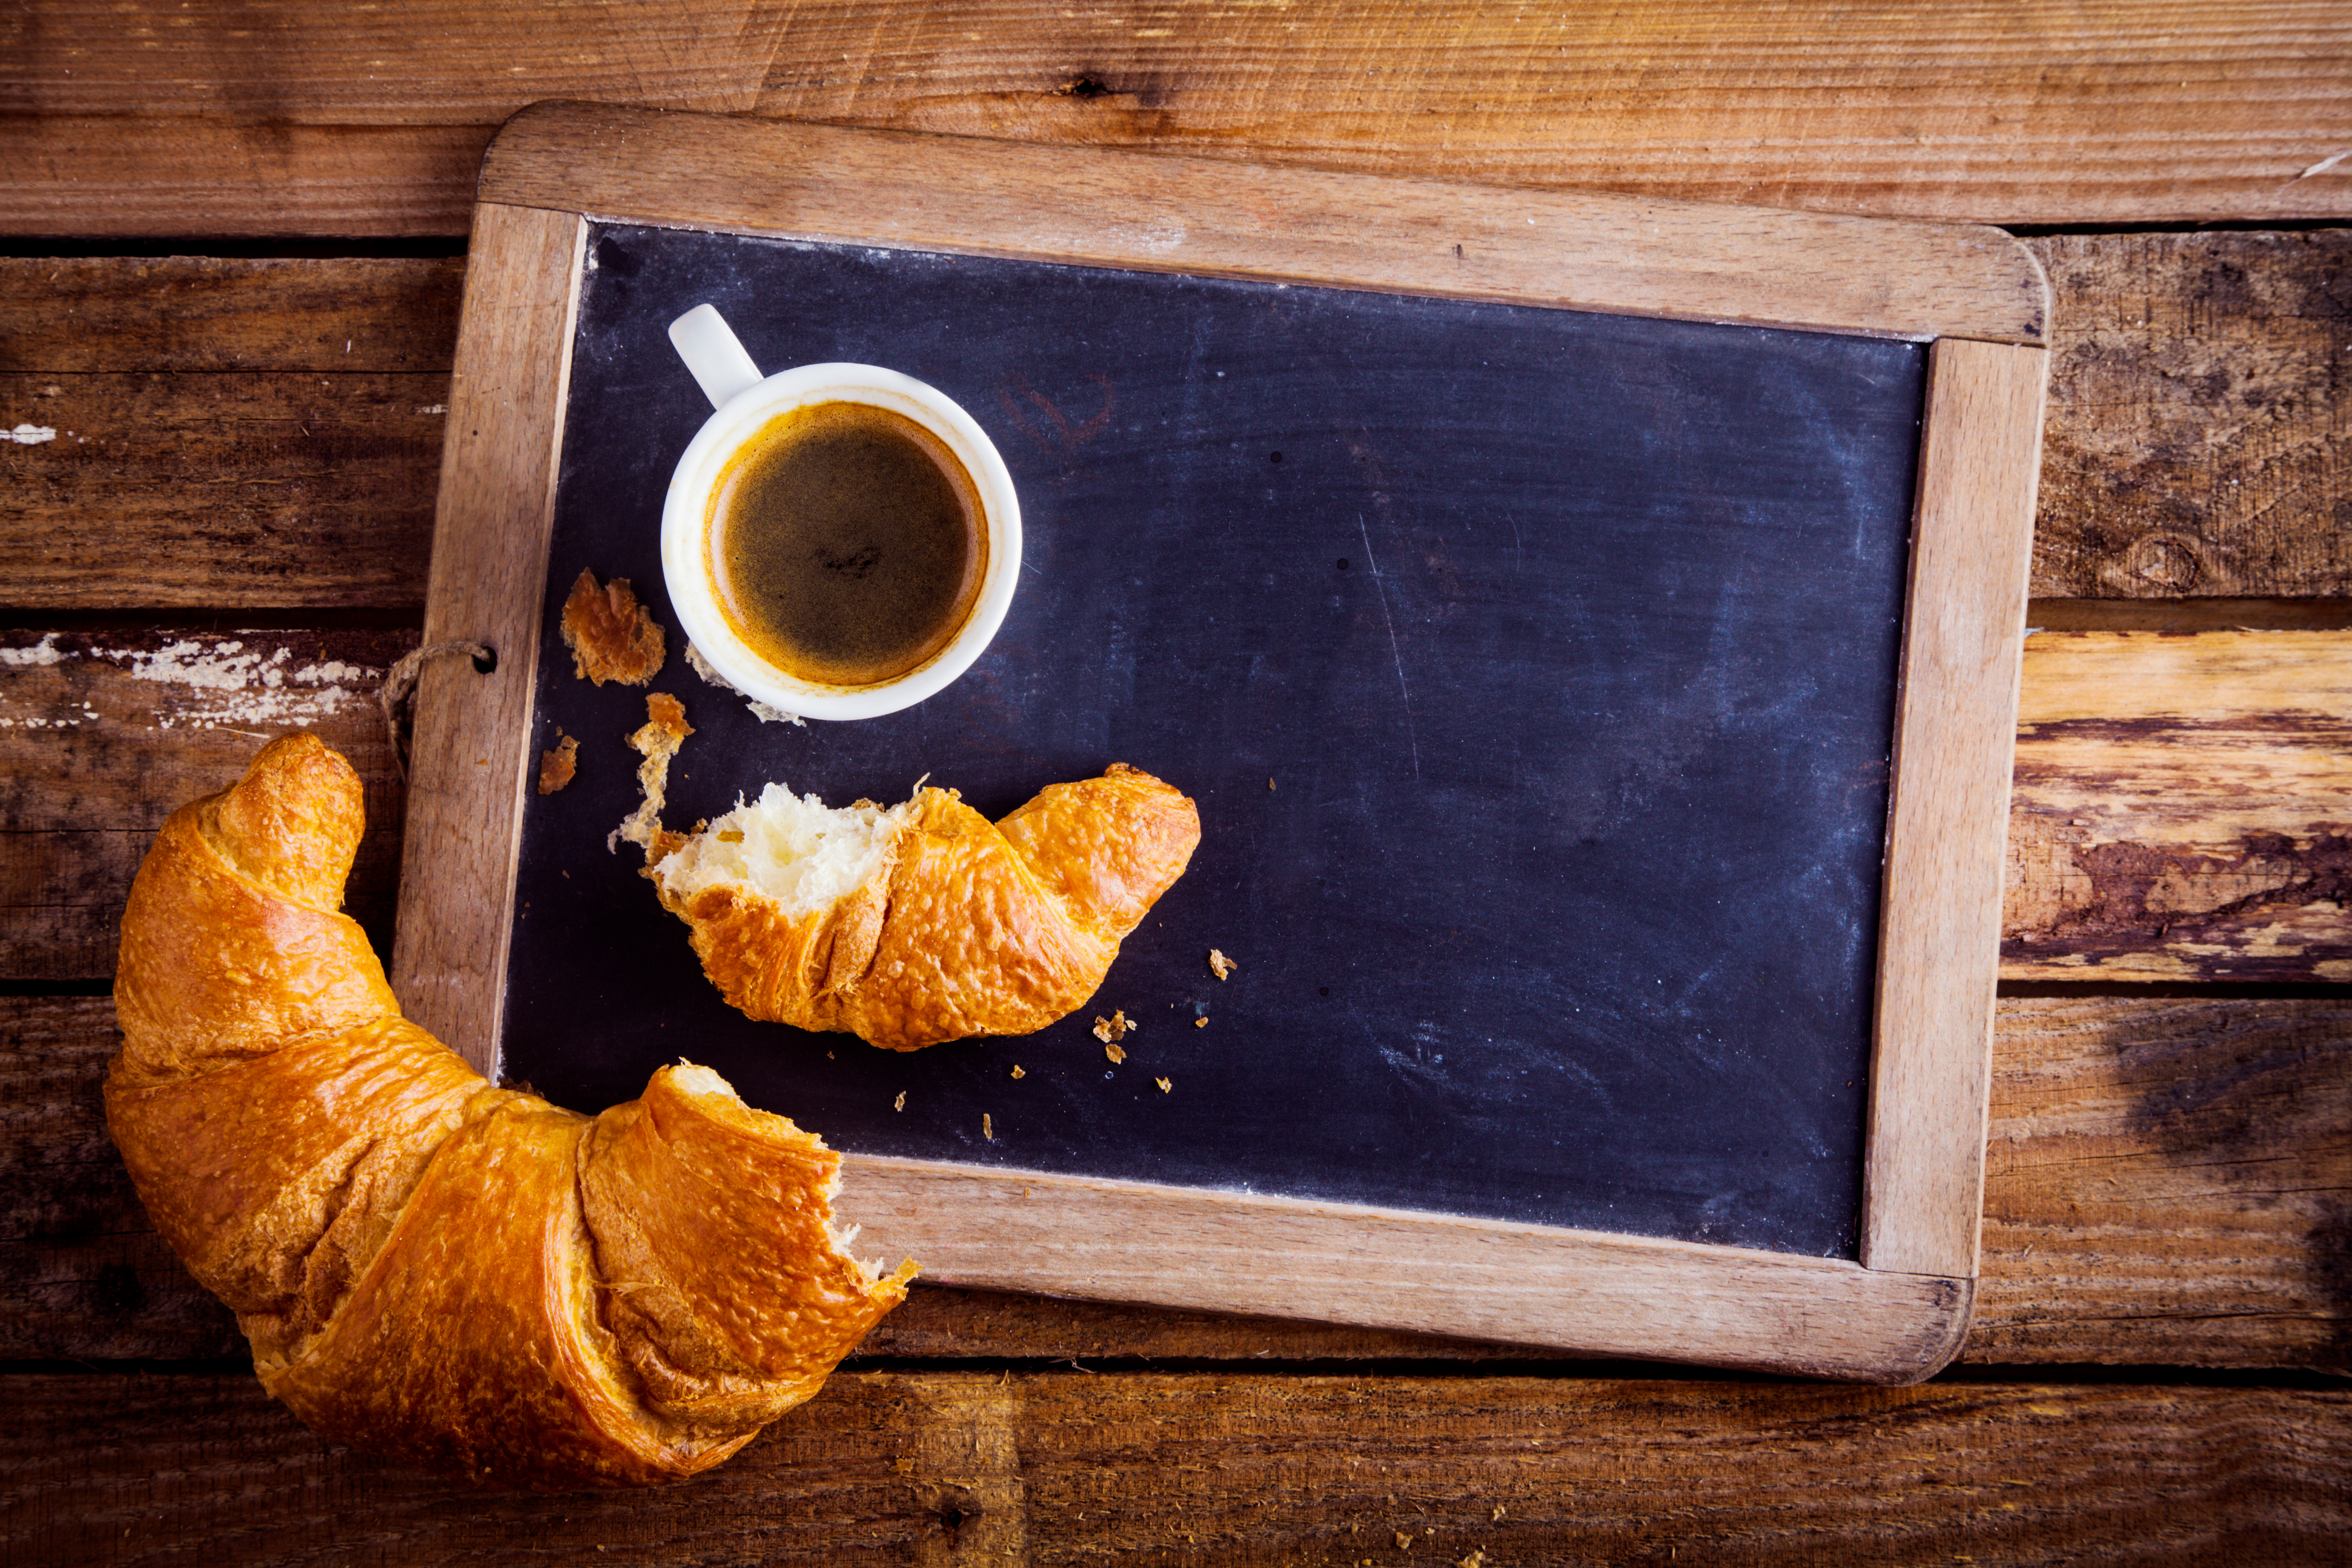 chalk board menu on table with coffee and croissant